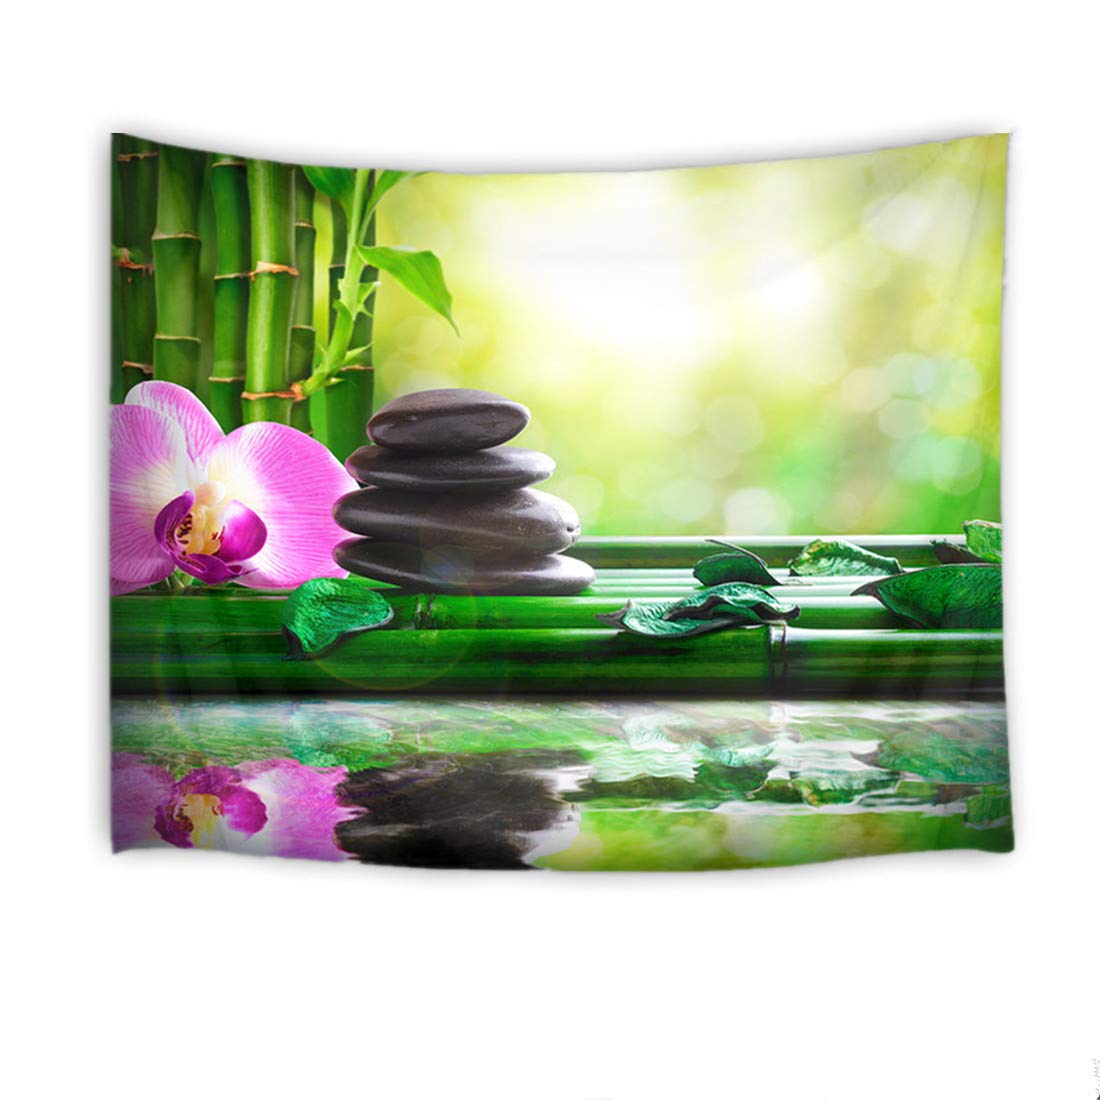 HVEST Zen Spa Tapestry,Orchid Tapestry Wall Hanging,Flowers and Massage Stones on Green Bamboo Stems Wall Blanket for Bedroom,Living Room,Dorm Decor,80 W X 60 H inch